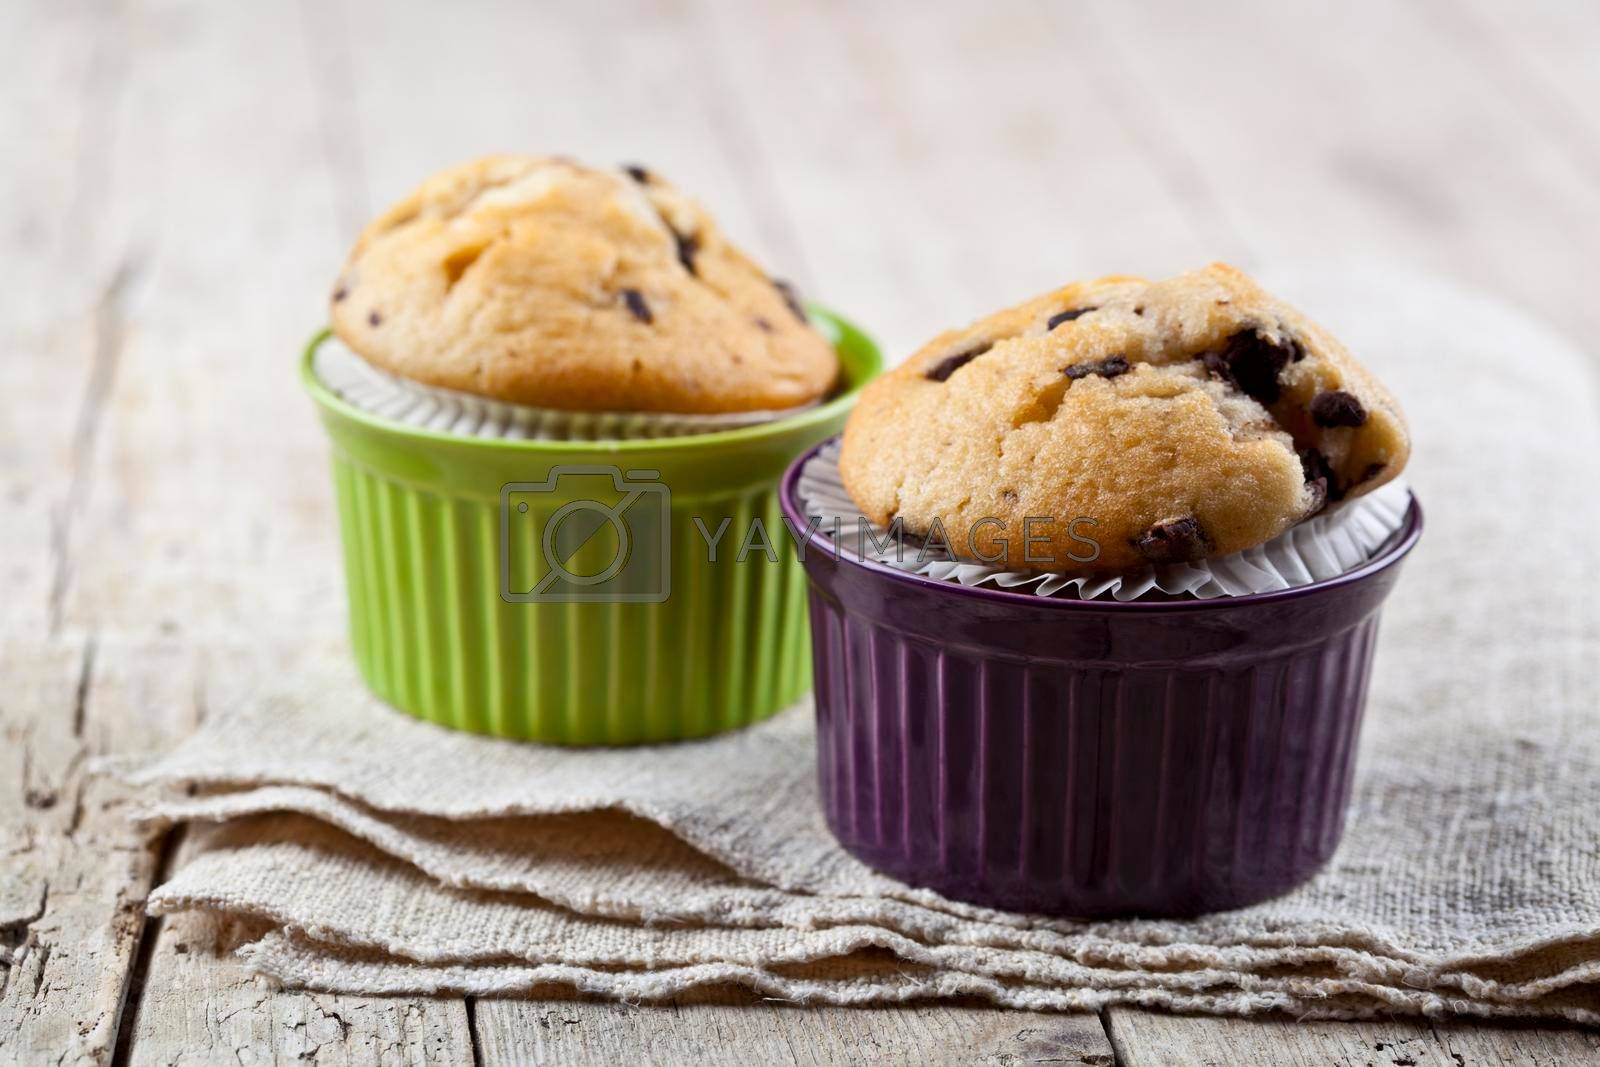 Homemade fresh muffins on ceramic bowls on linen napkin on rustic wooden table background.